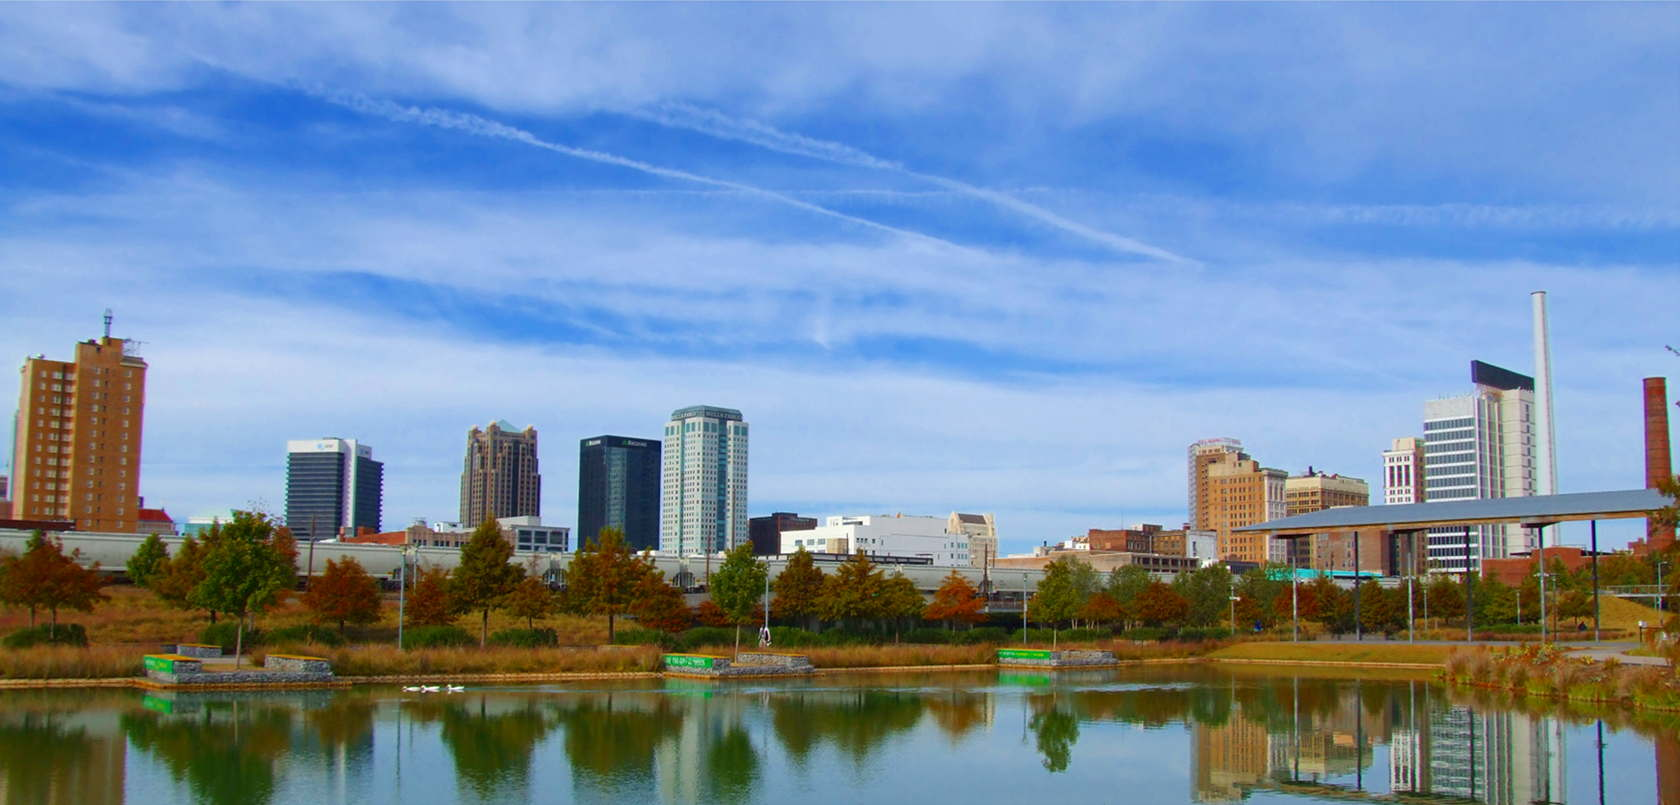 Haynes Neurosurgical group's Birmingham's skyline from Railroad Park